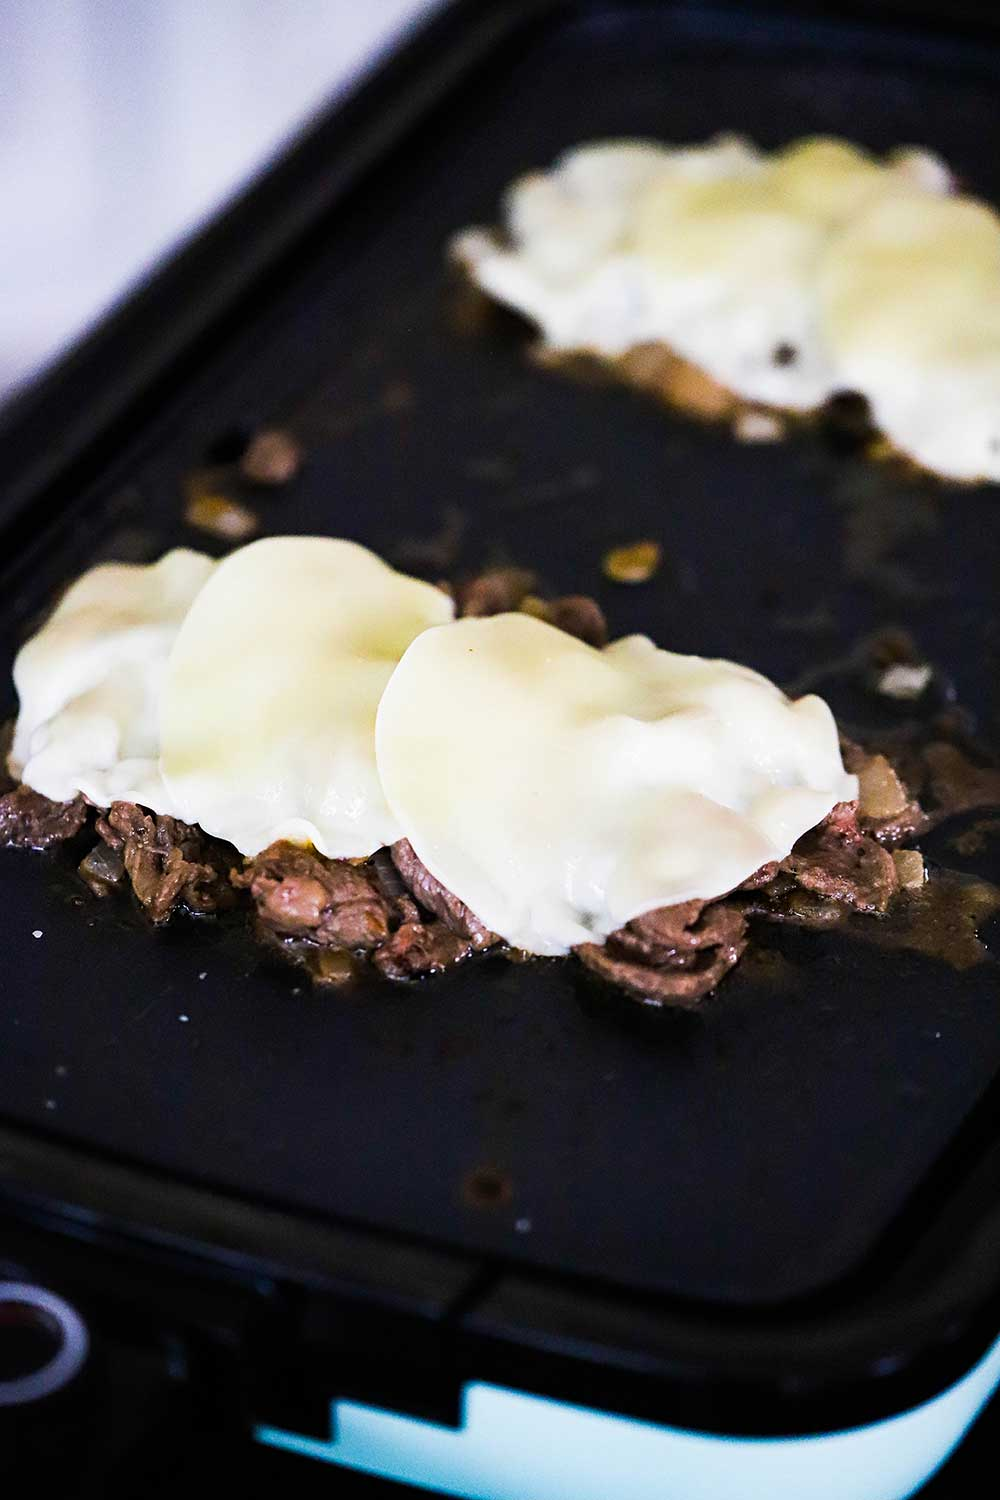 Two mounds of cooked sliced of ribeye steak on a hot griddle with Provolone cheese slices melting on top of each mound of meat.